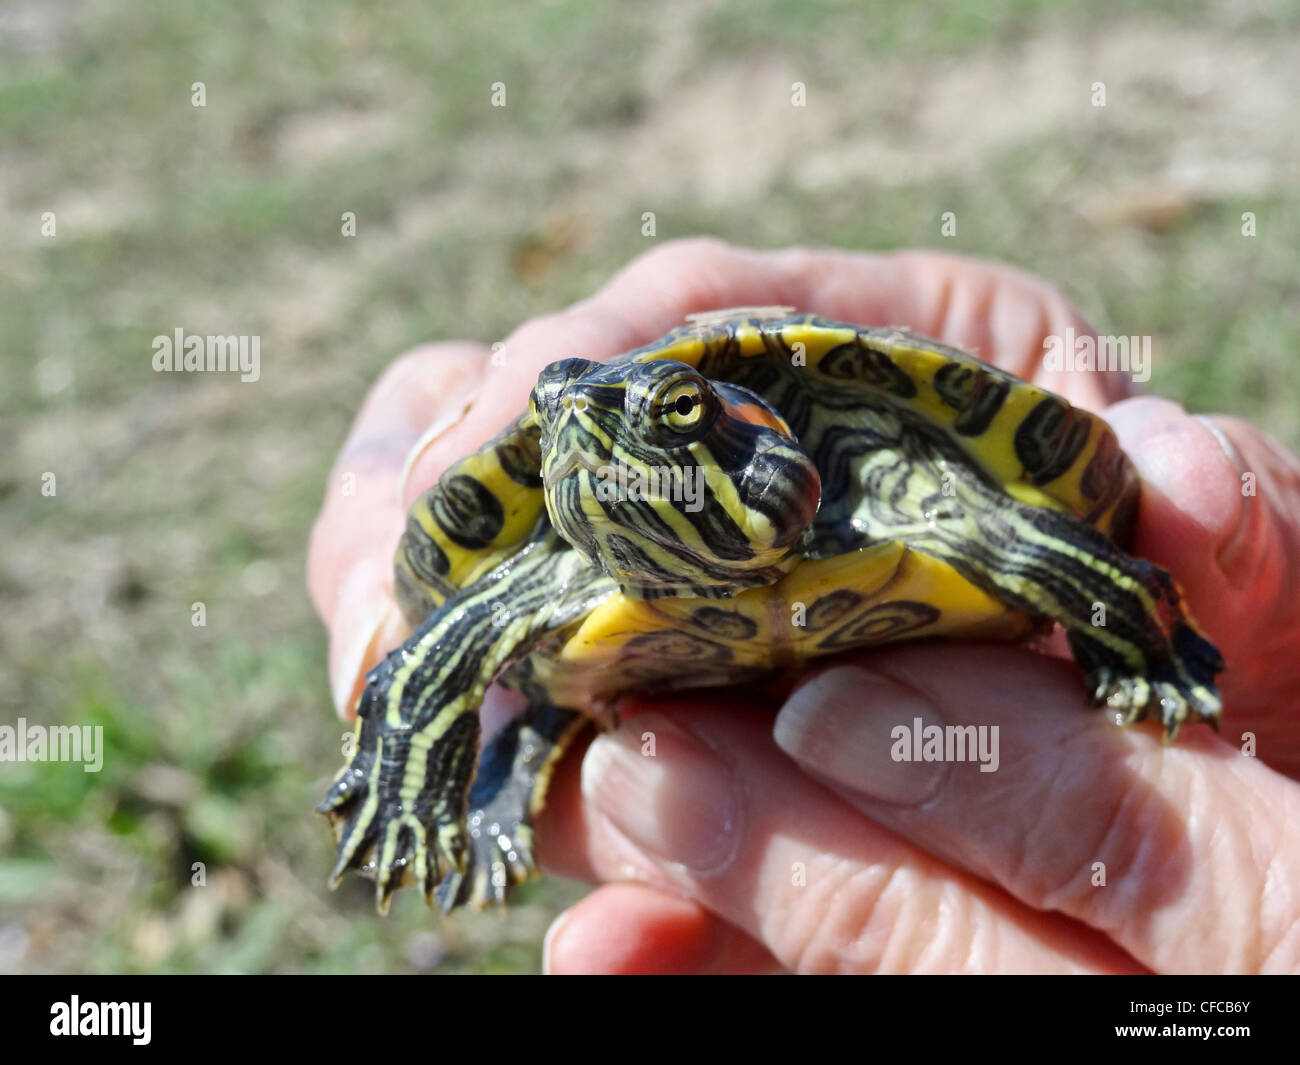 Tortue à oreilles rouges, reptiles, tortues aquatiques, Texas, log, marécage, Trachemys scripta elegans, Photo Stock